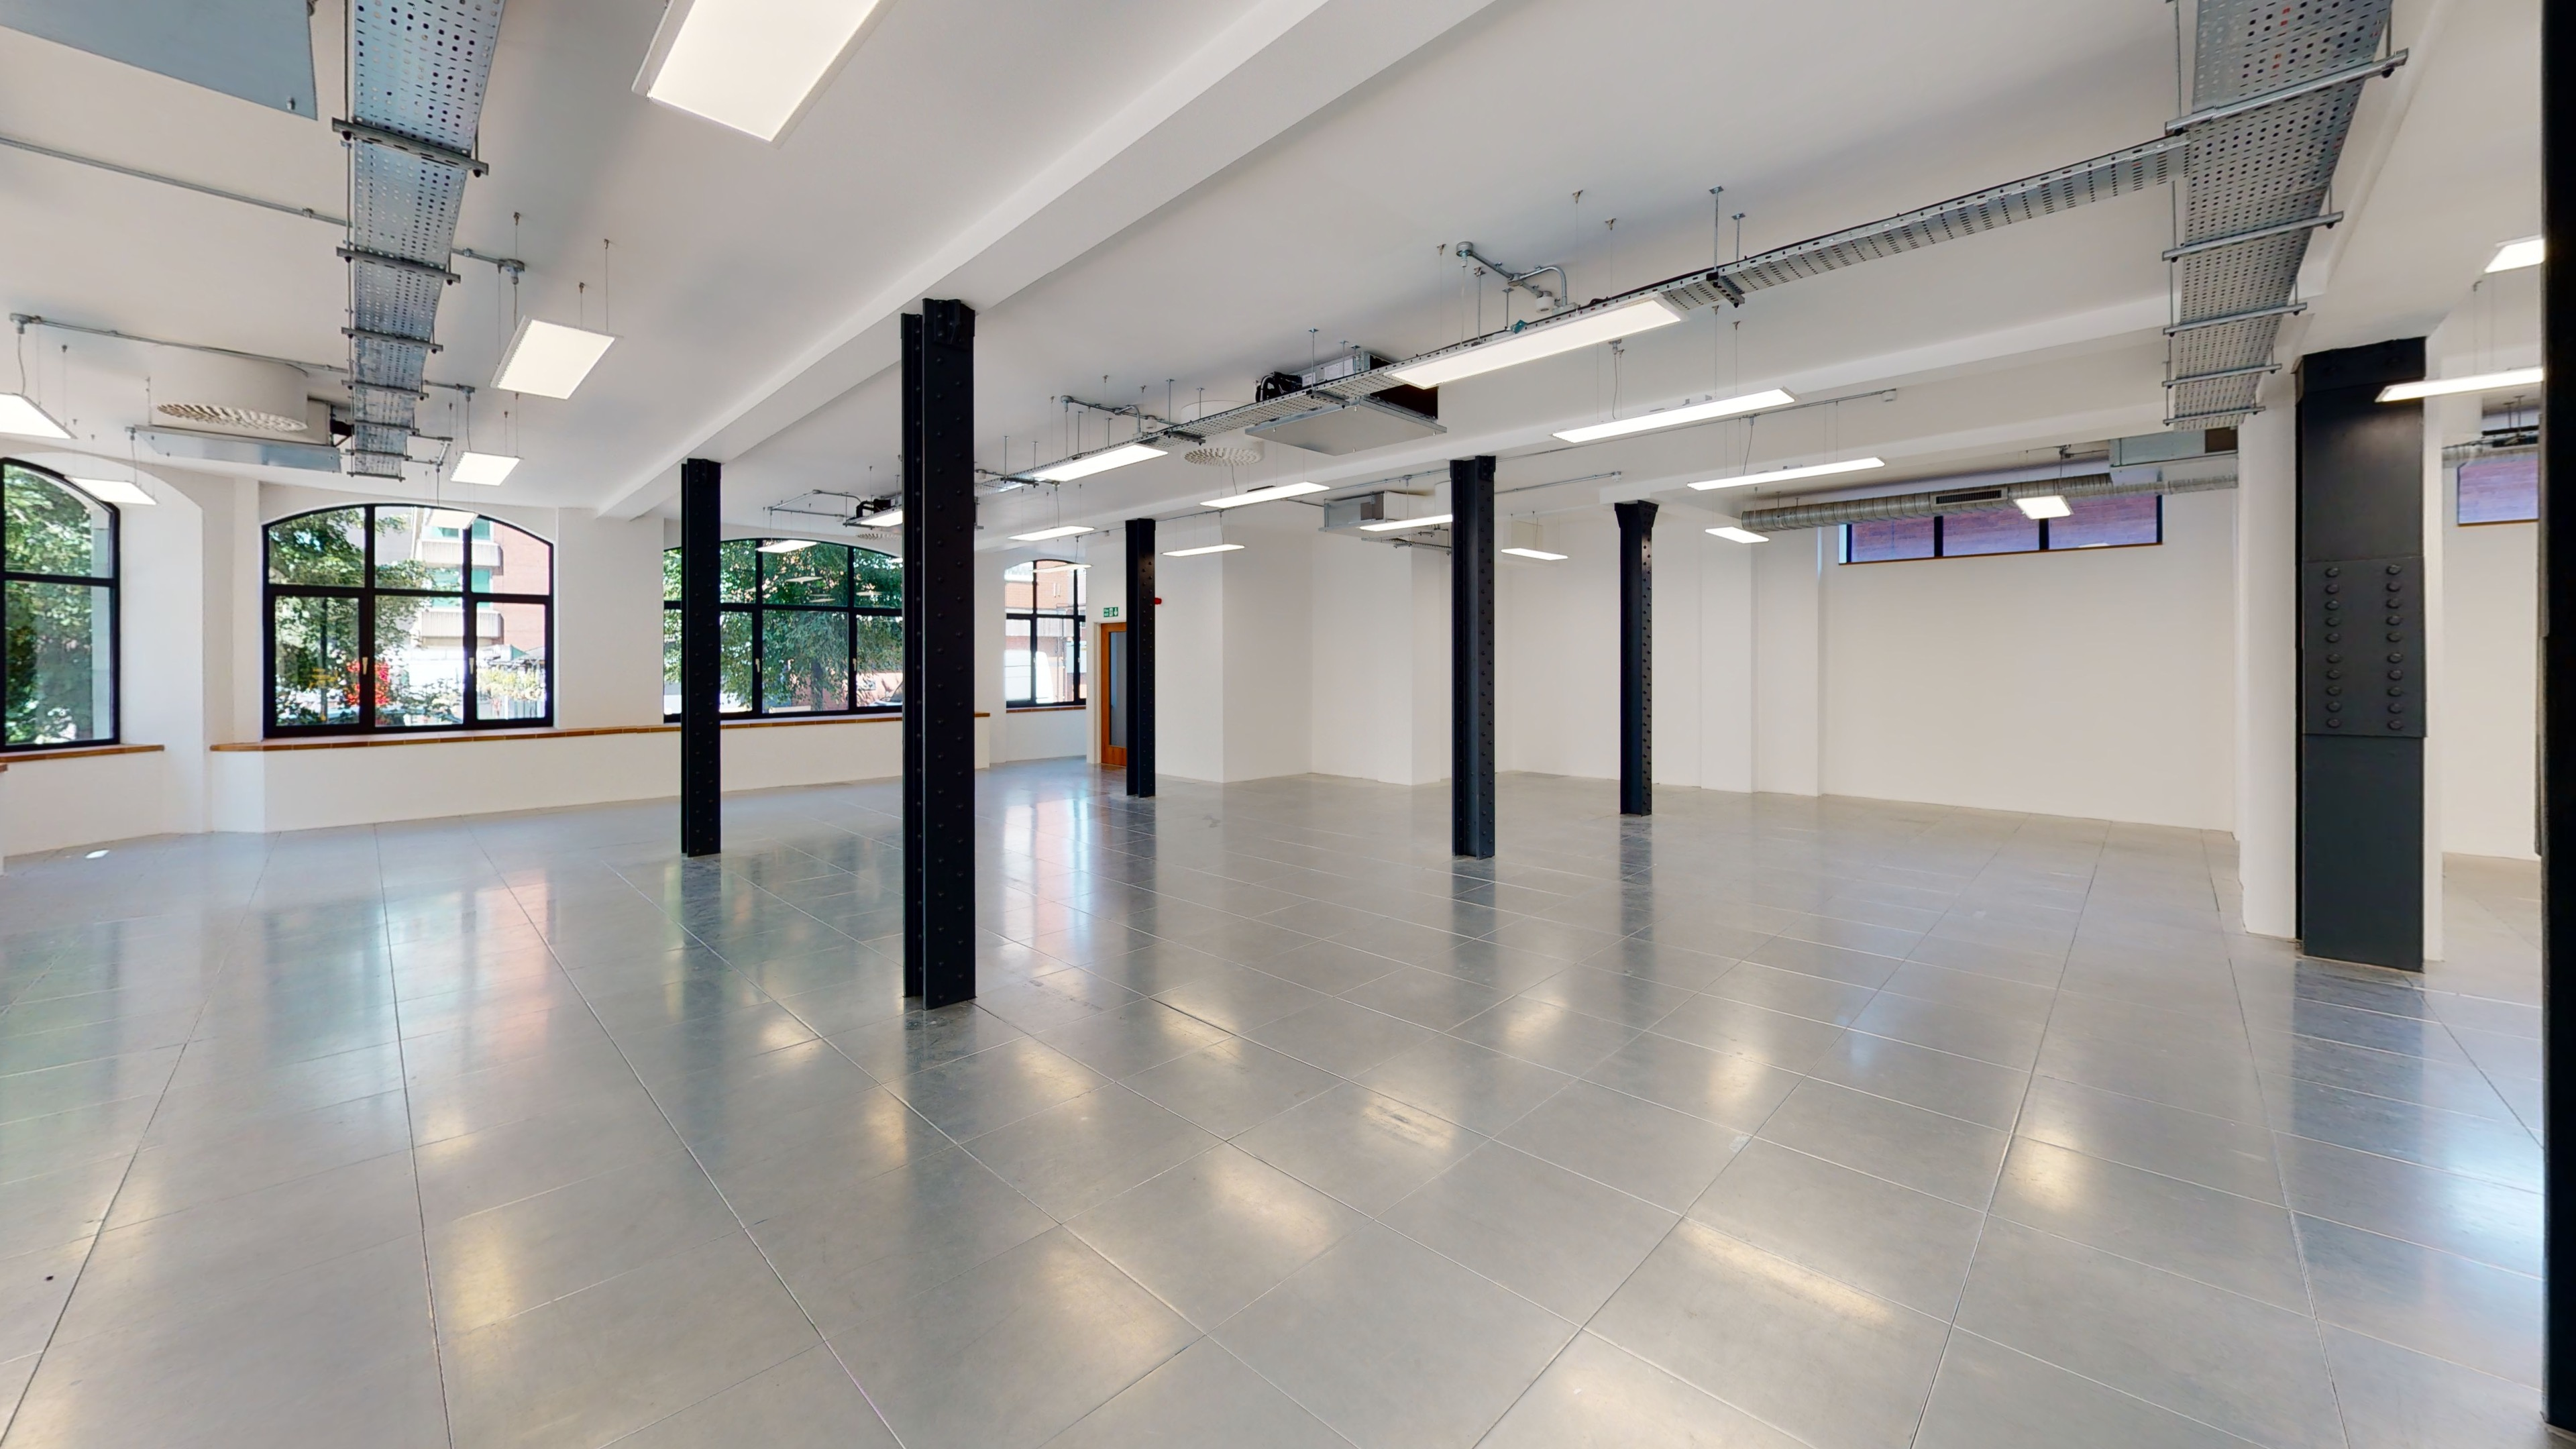 Photo of 209 Blackfriars Road, SE1: available floor by floor or self-contained.